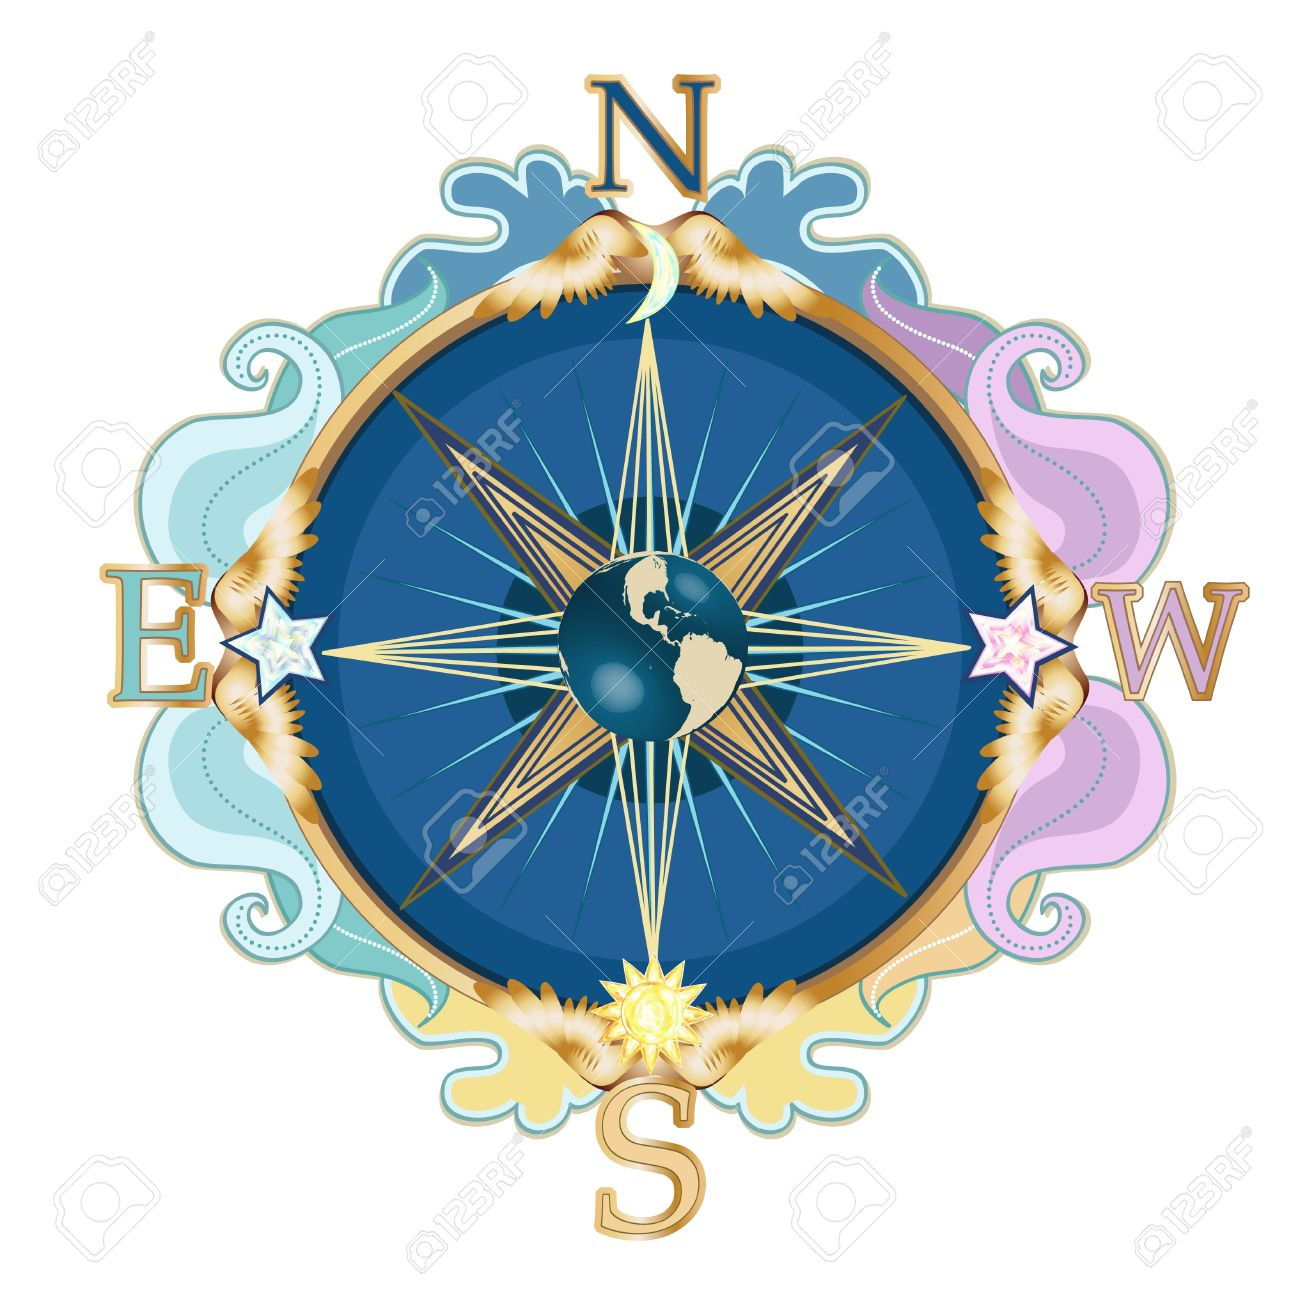 Compass Rose Images